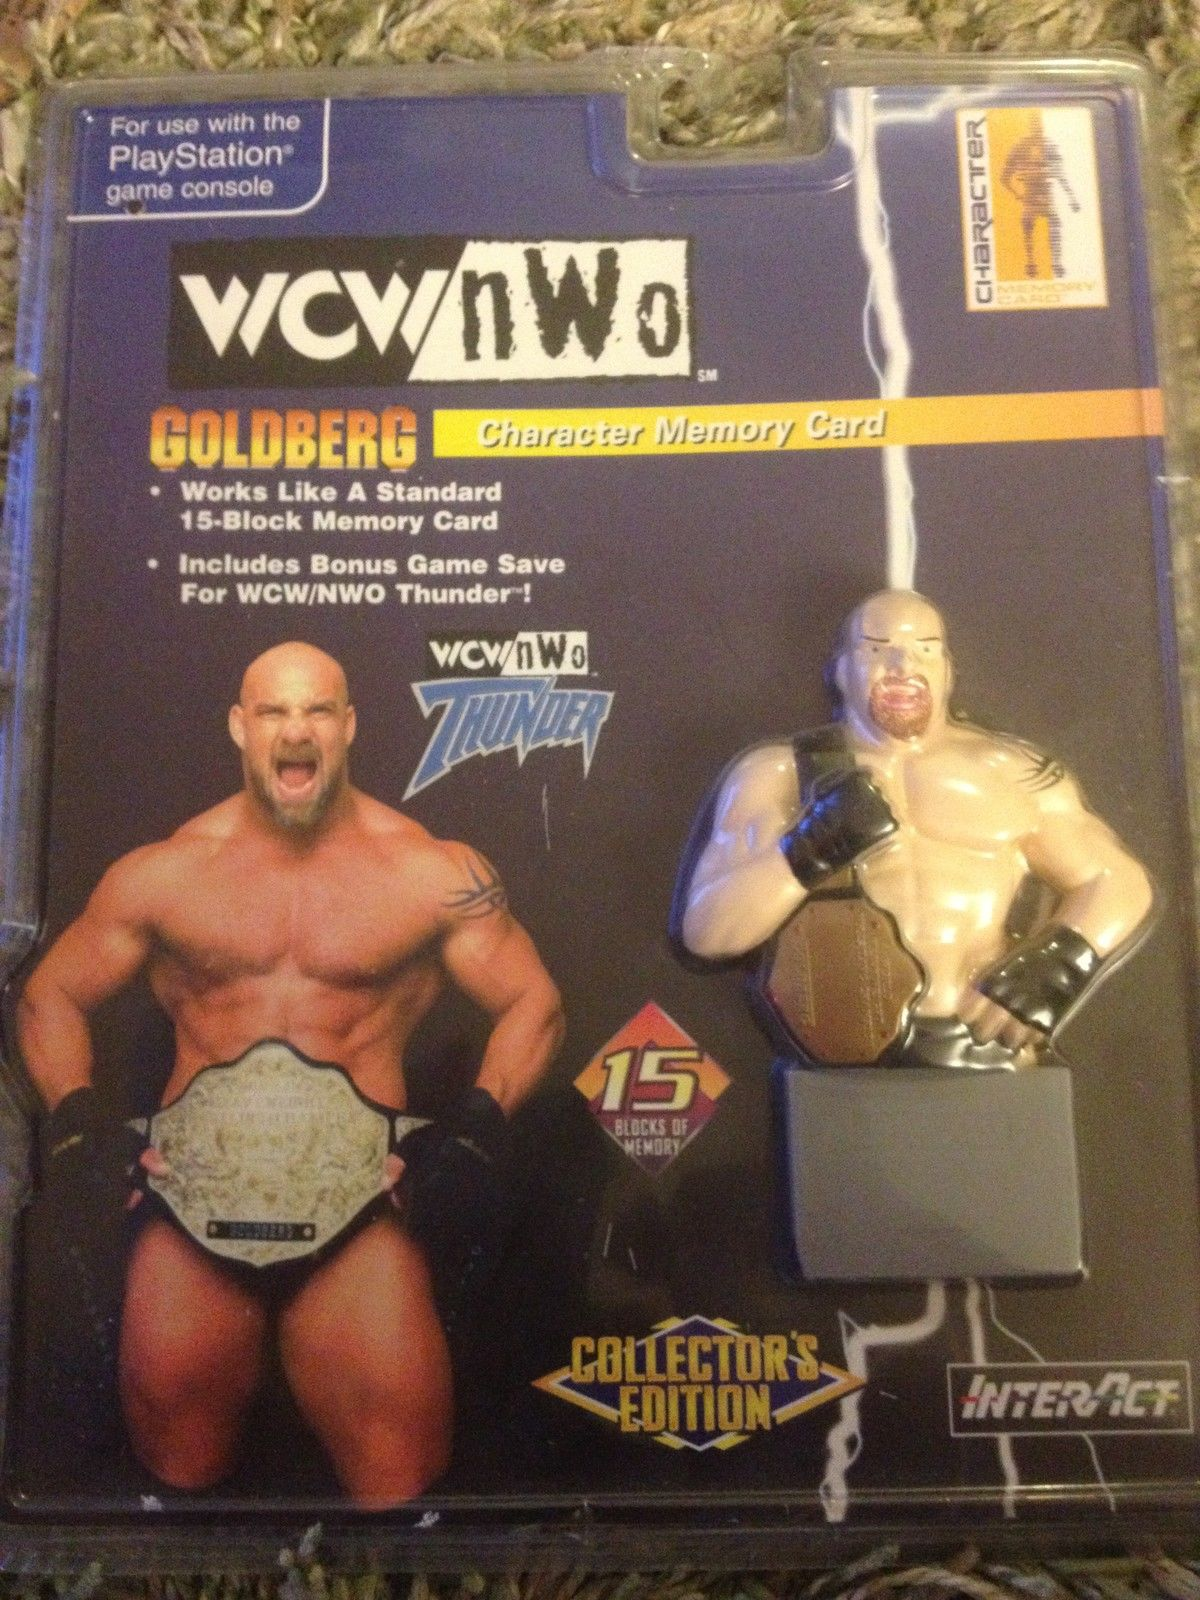 WCW Thunder Bill Goldberg Sony Playstation Memory Card box